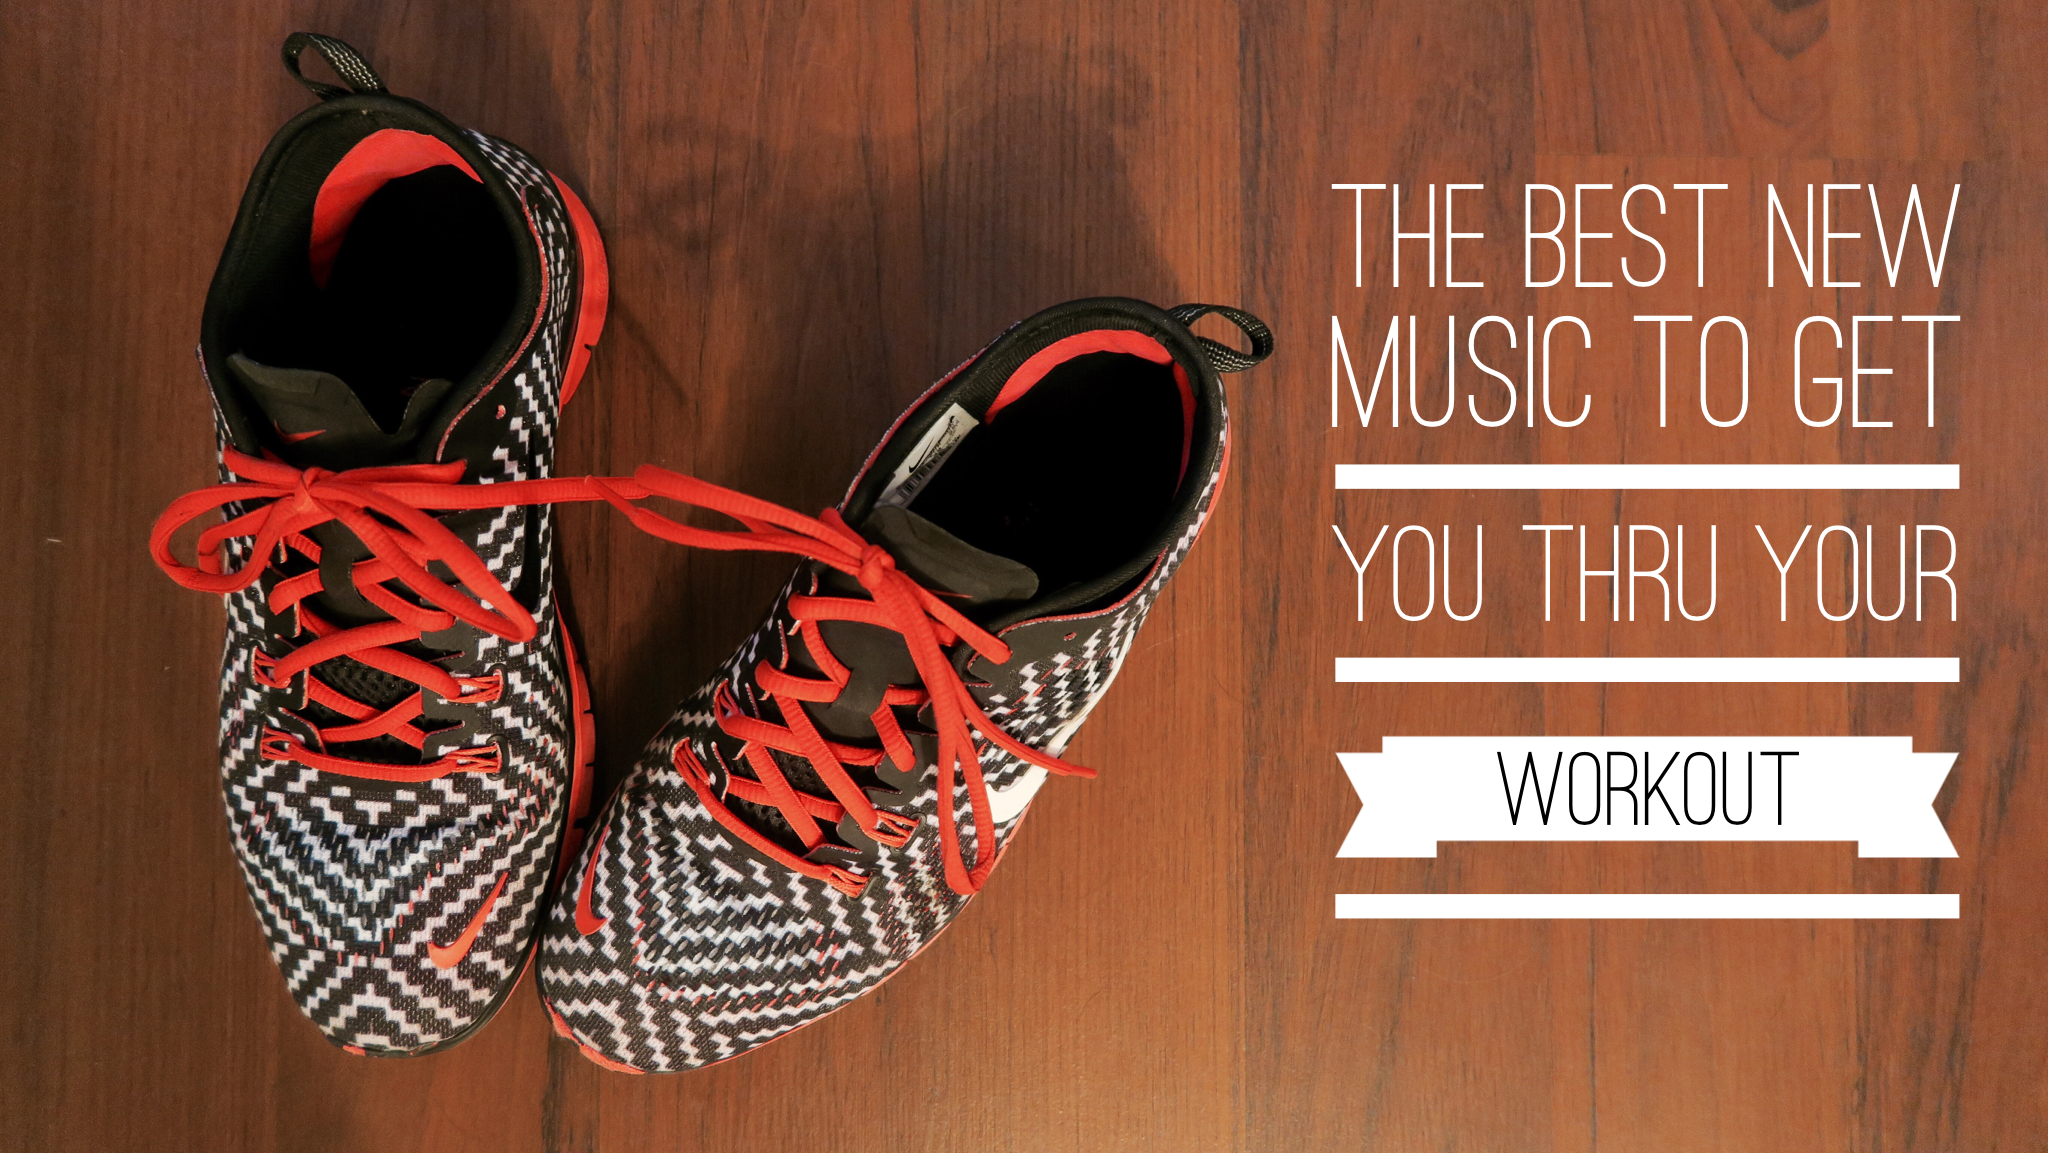 The Best New Music to Get You Thru Your Workout